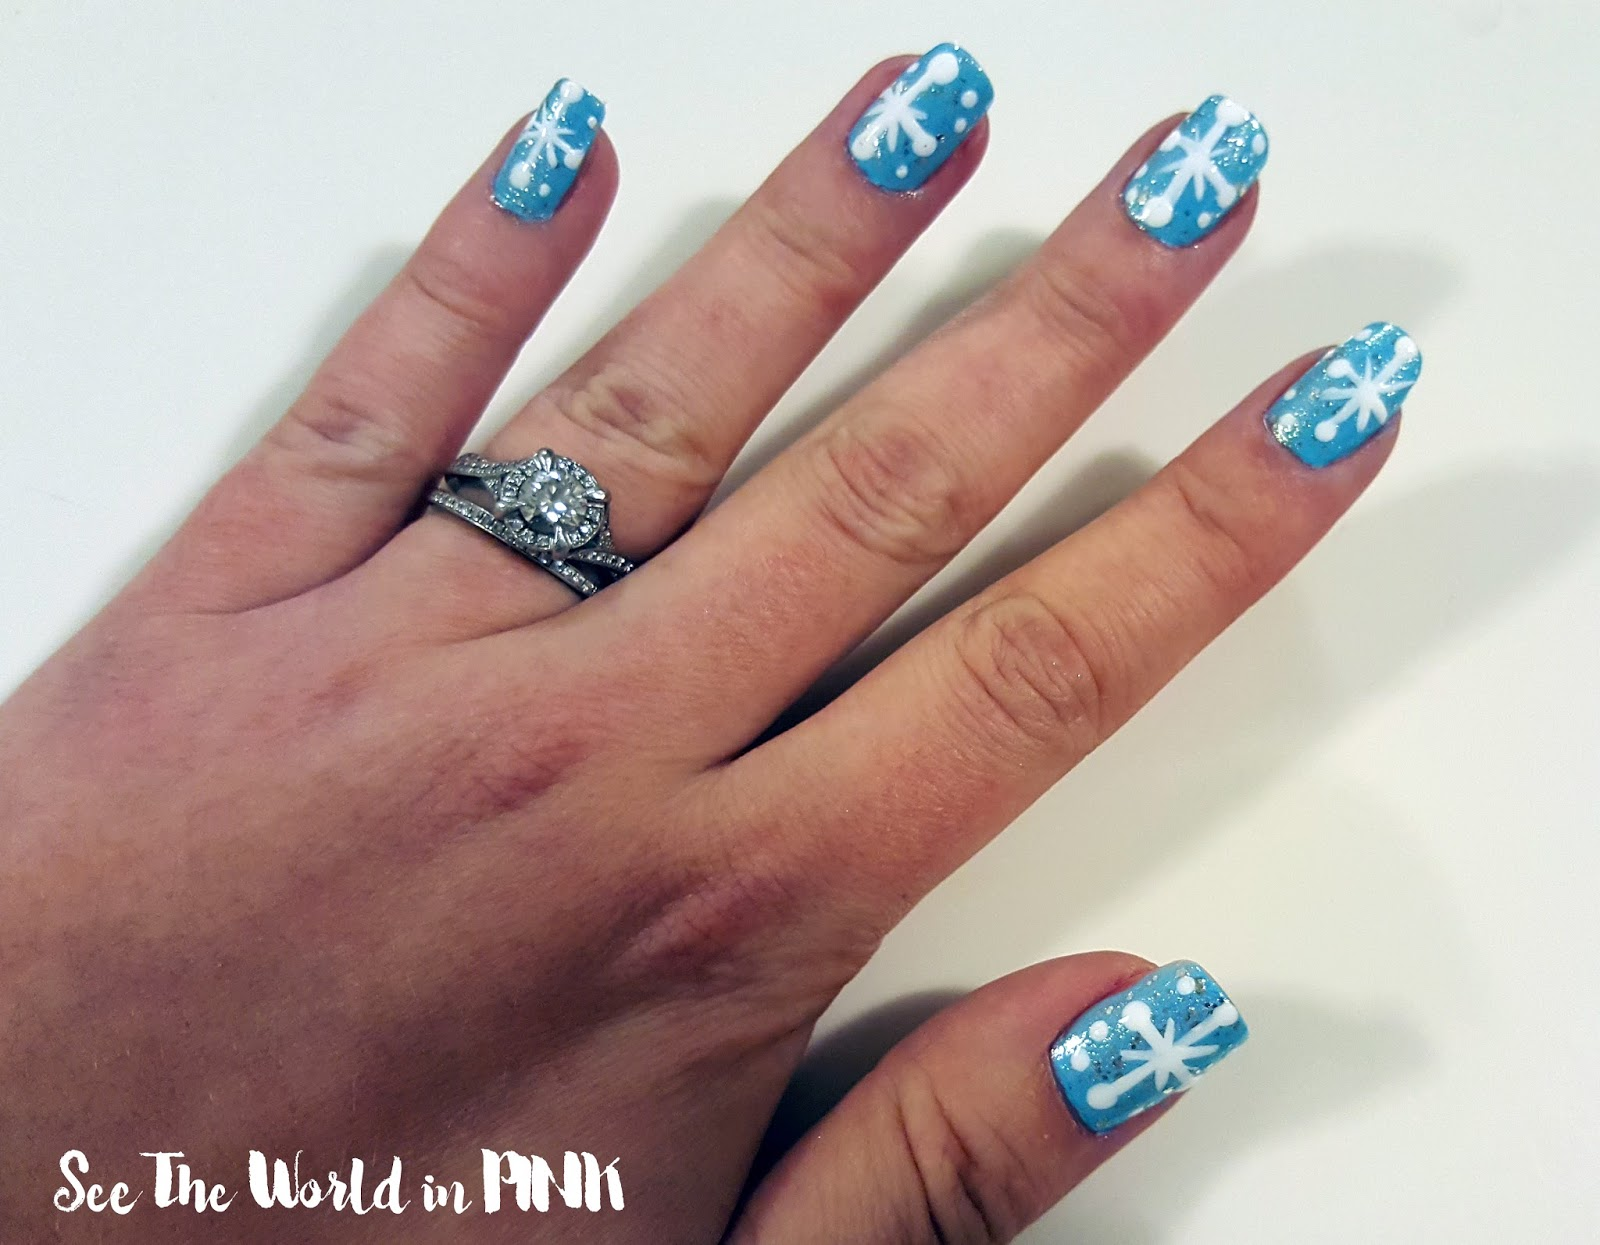 Manicure Monday - Blue, White and Silver Snowflakes!